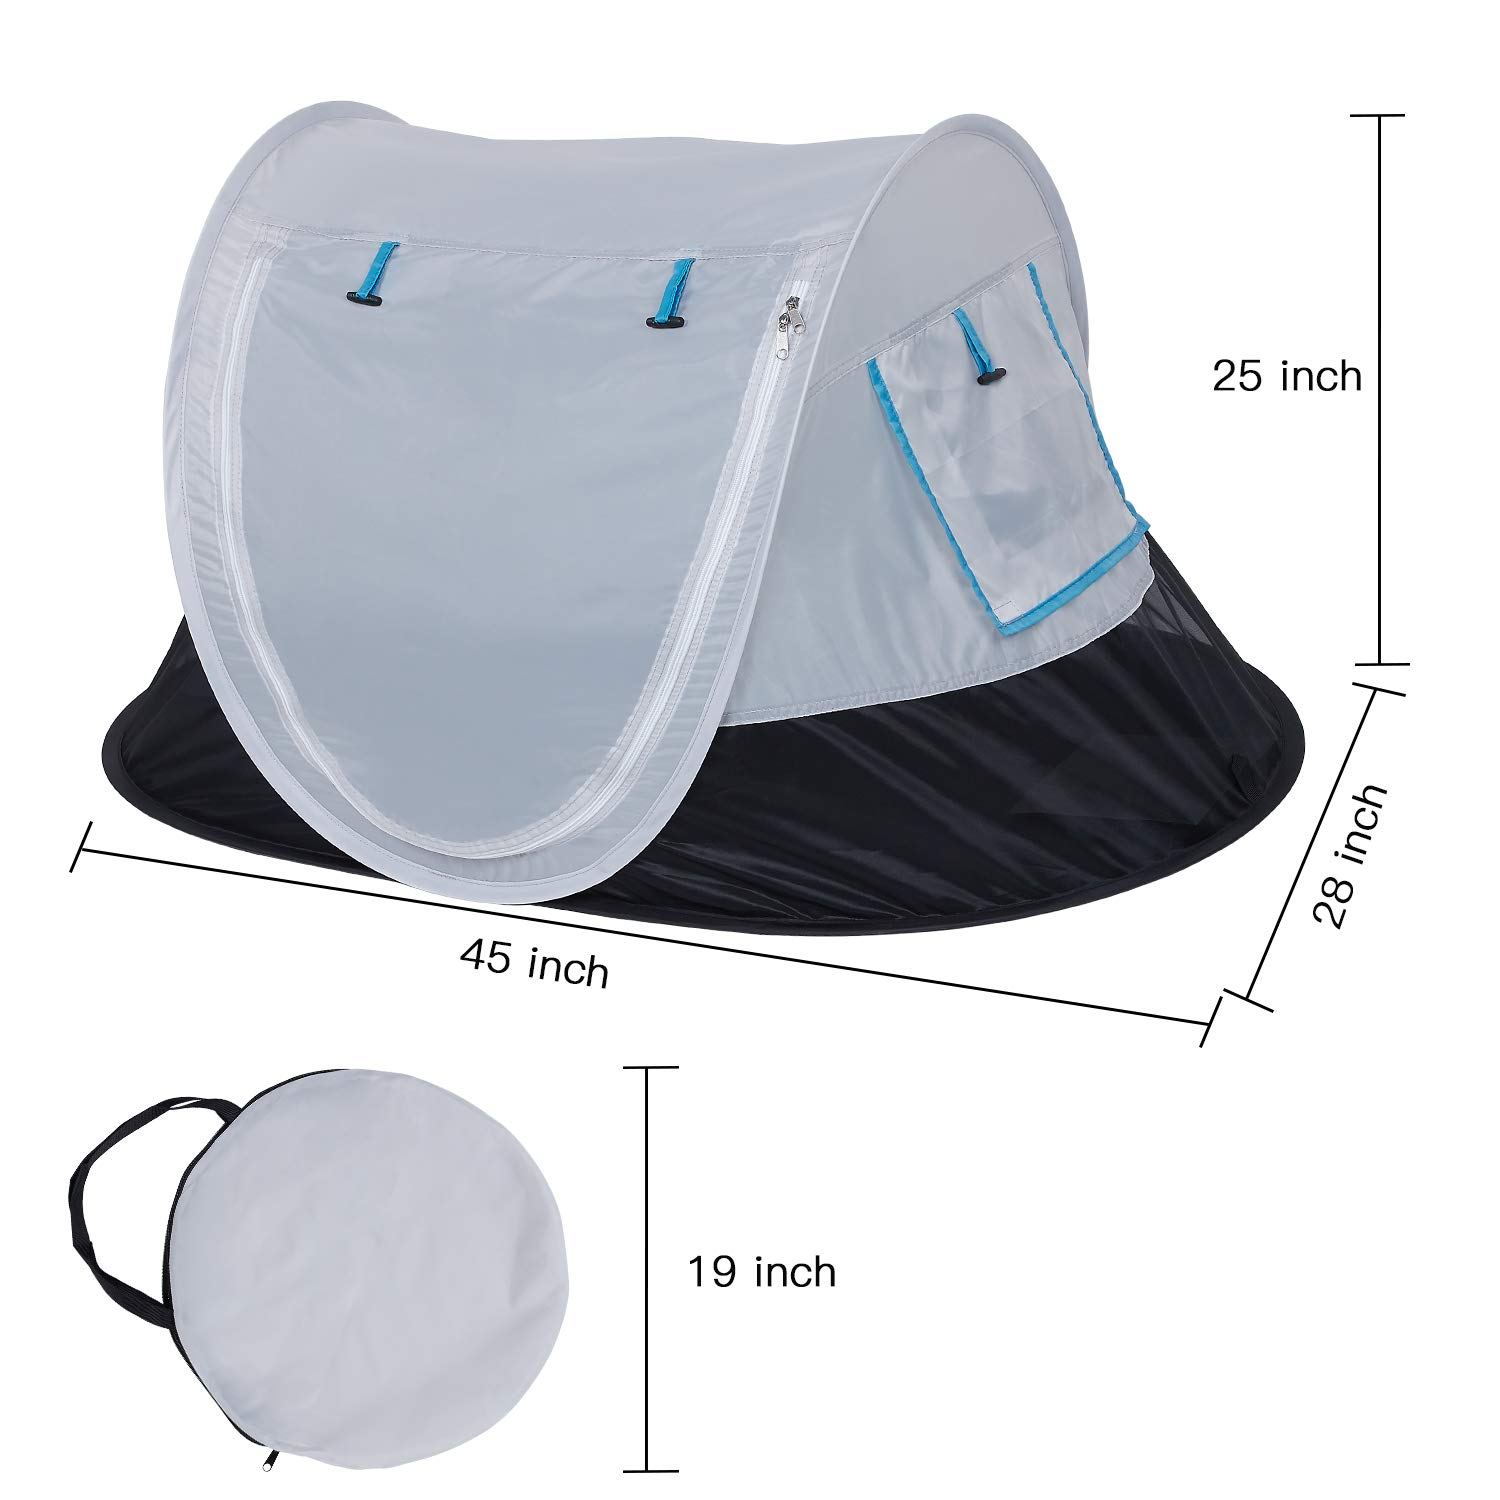 SHDIBA Portable Travel Pop up Baby Tent, Large Beach Sun Shelter Infant Tent, UPF 50+, Baby Sleep Outdoor Camping Mosquito Tent by SHDIBA (Image #3)